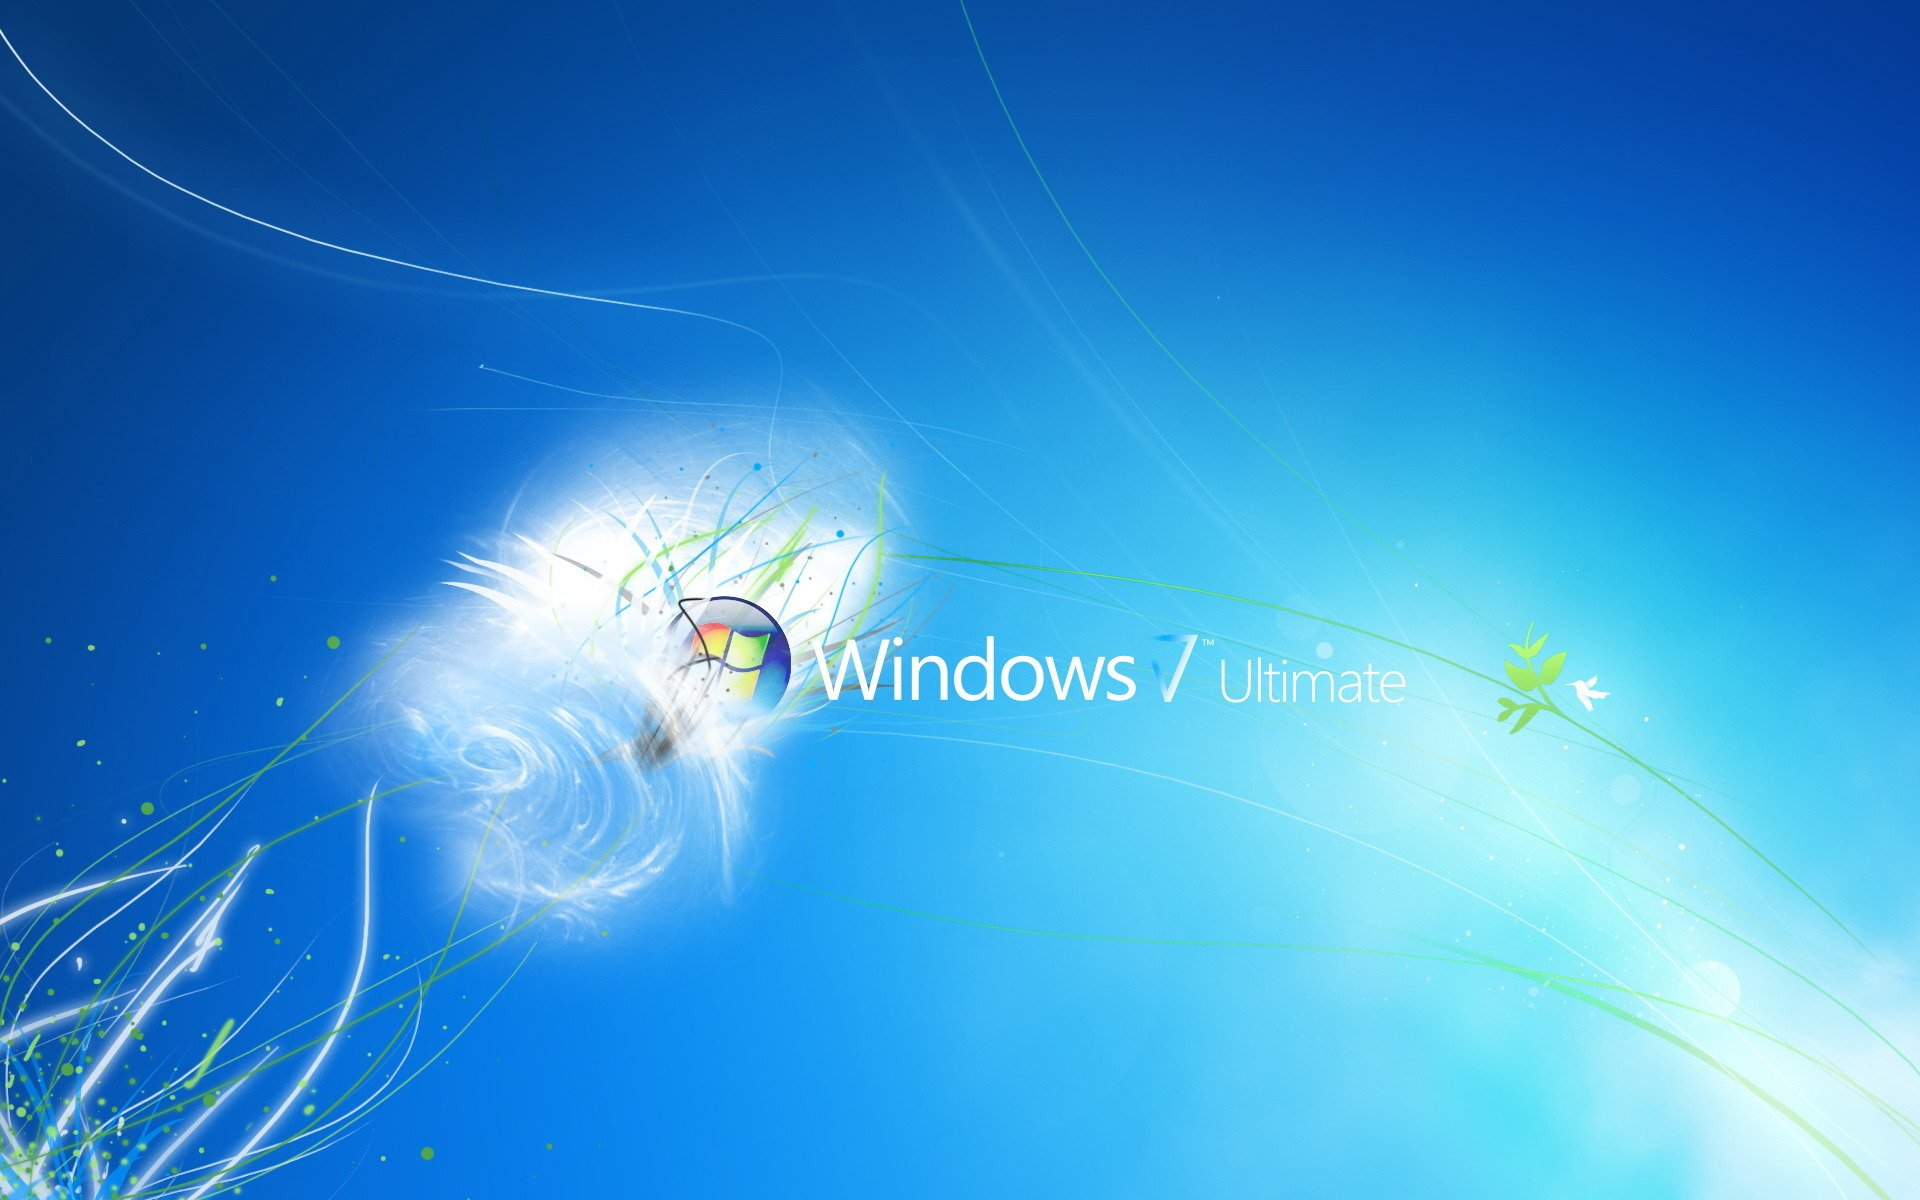 Home windows 7 Final HD Wallpapers   HD Images New 1920x1200